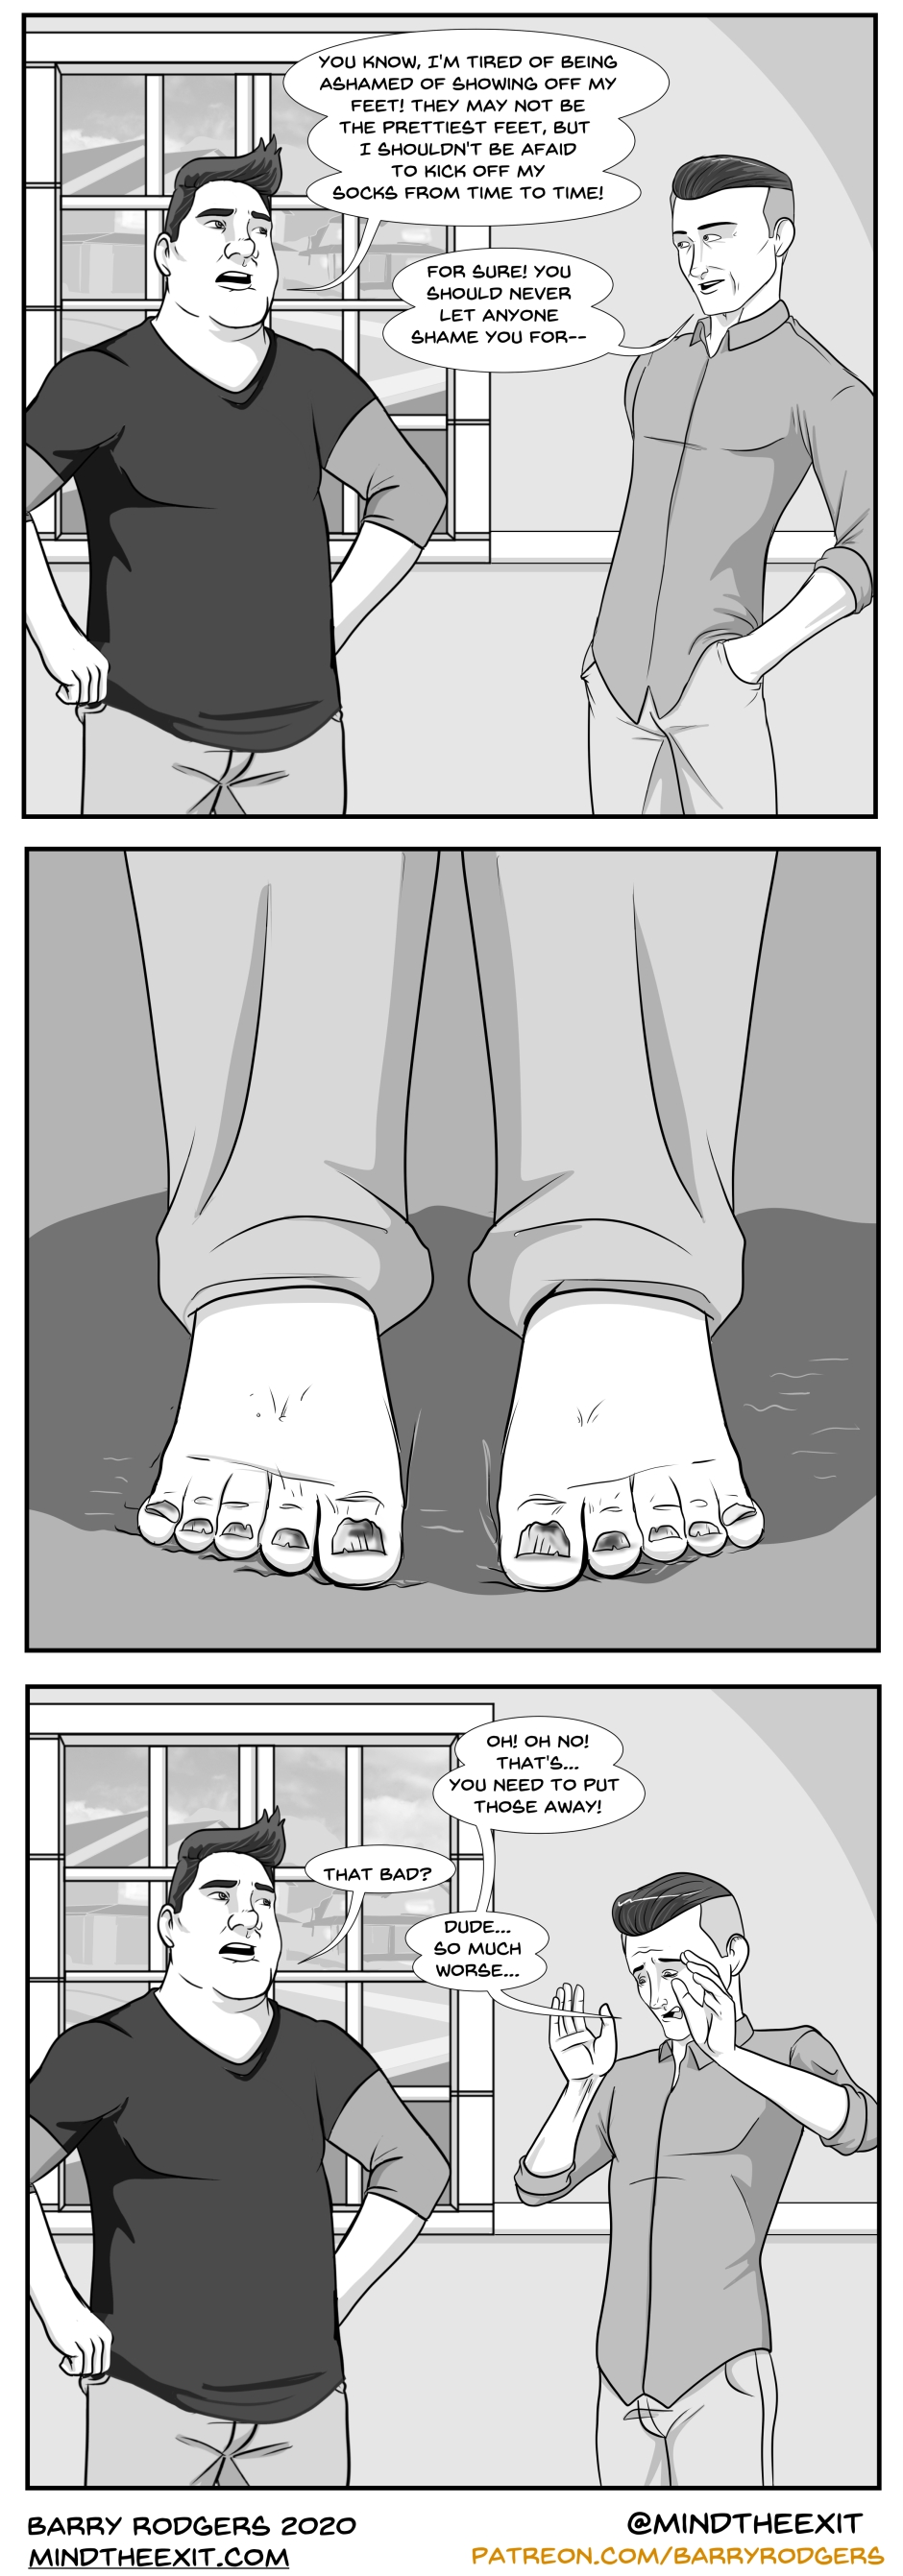 gross feet1